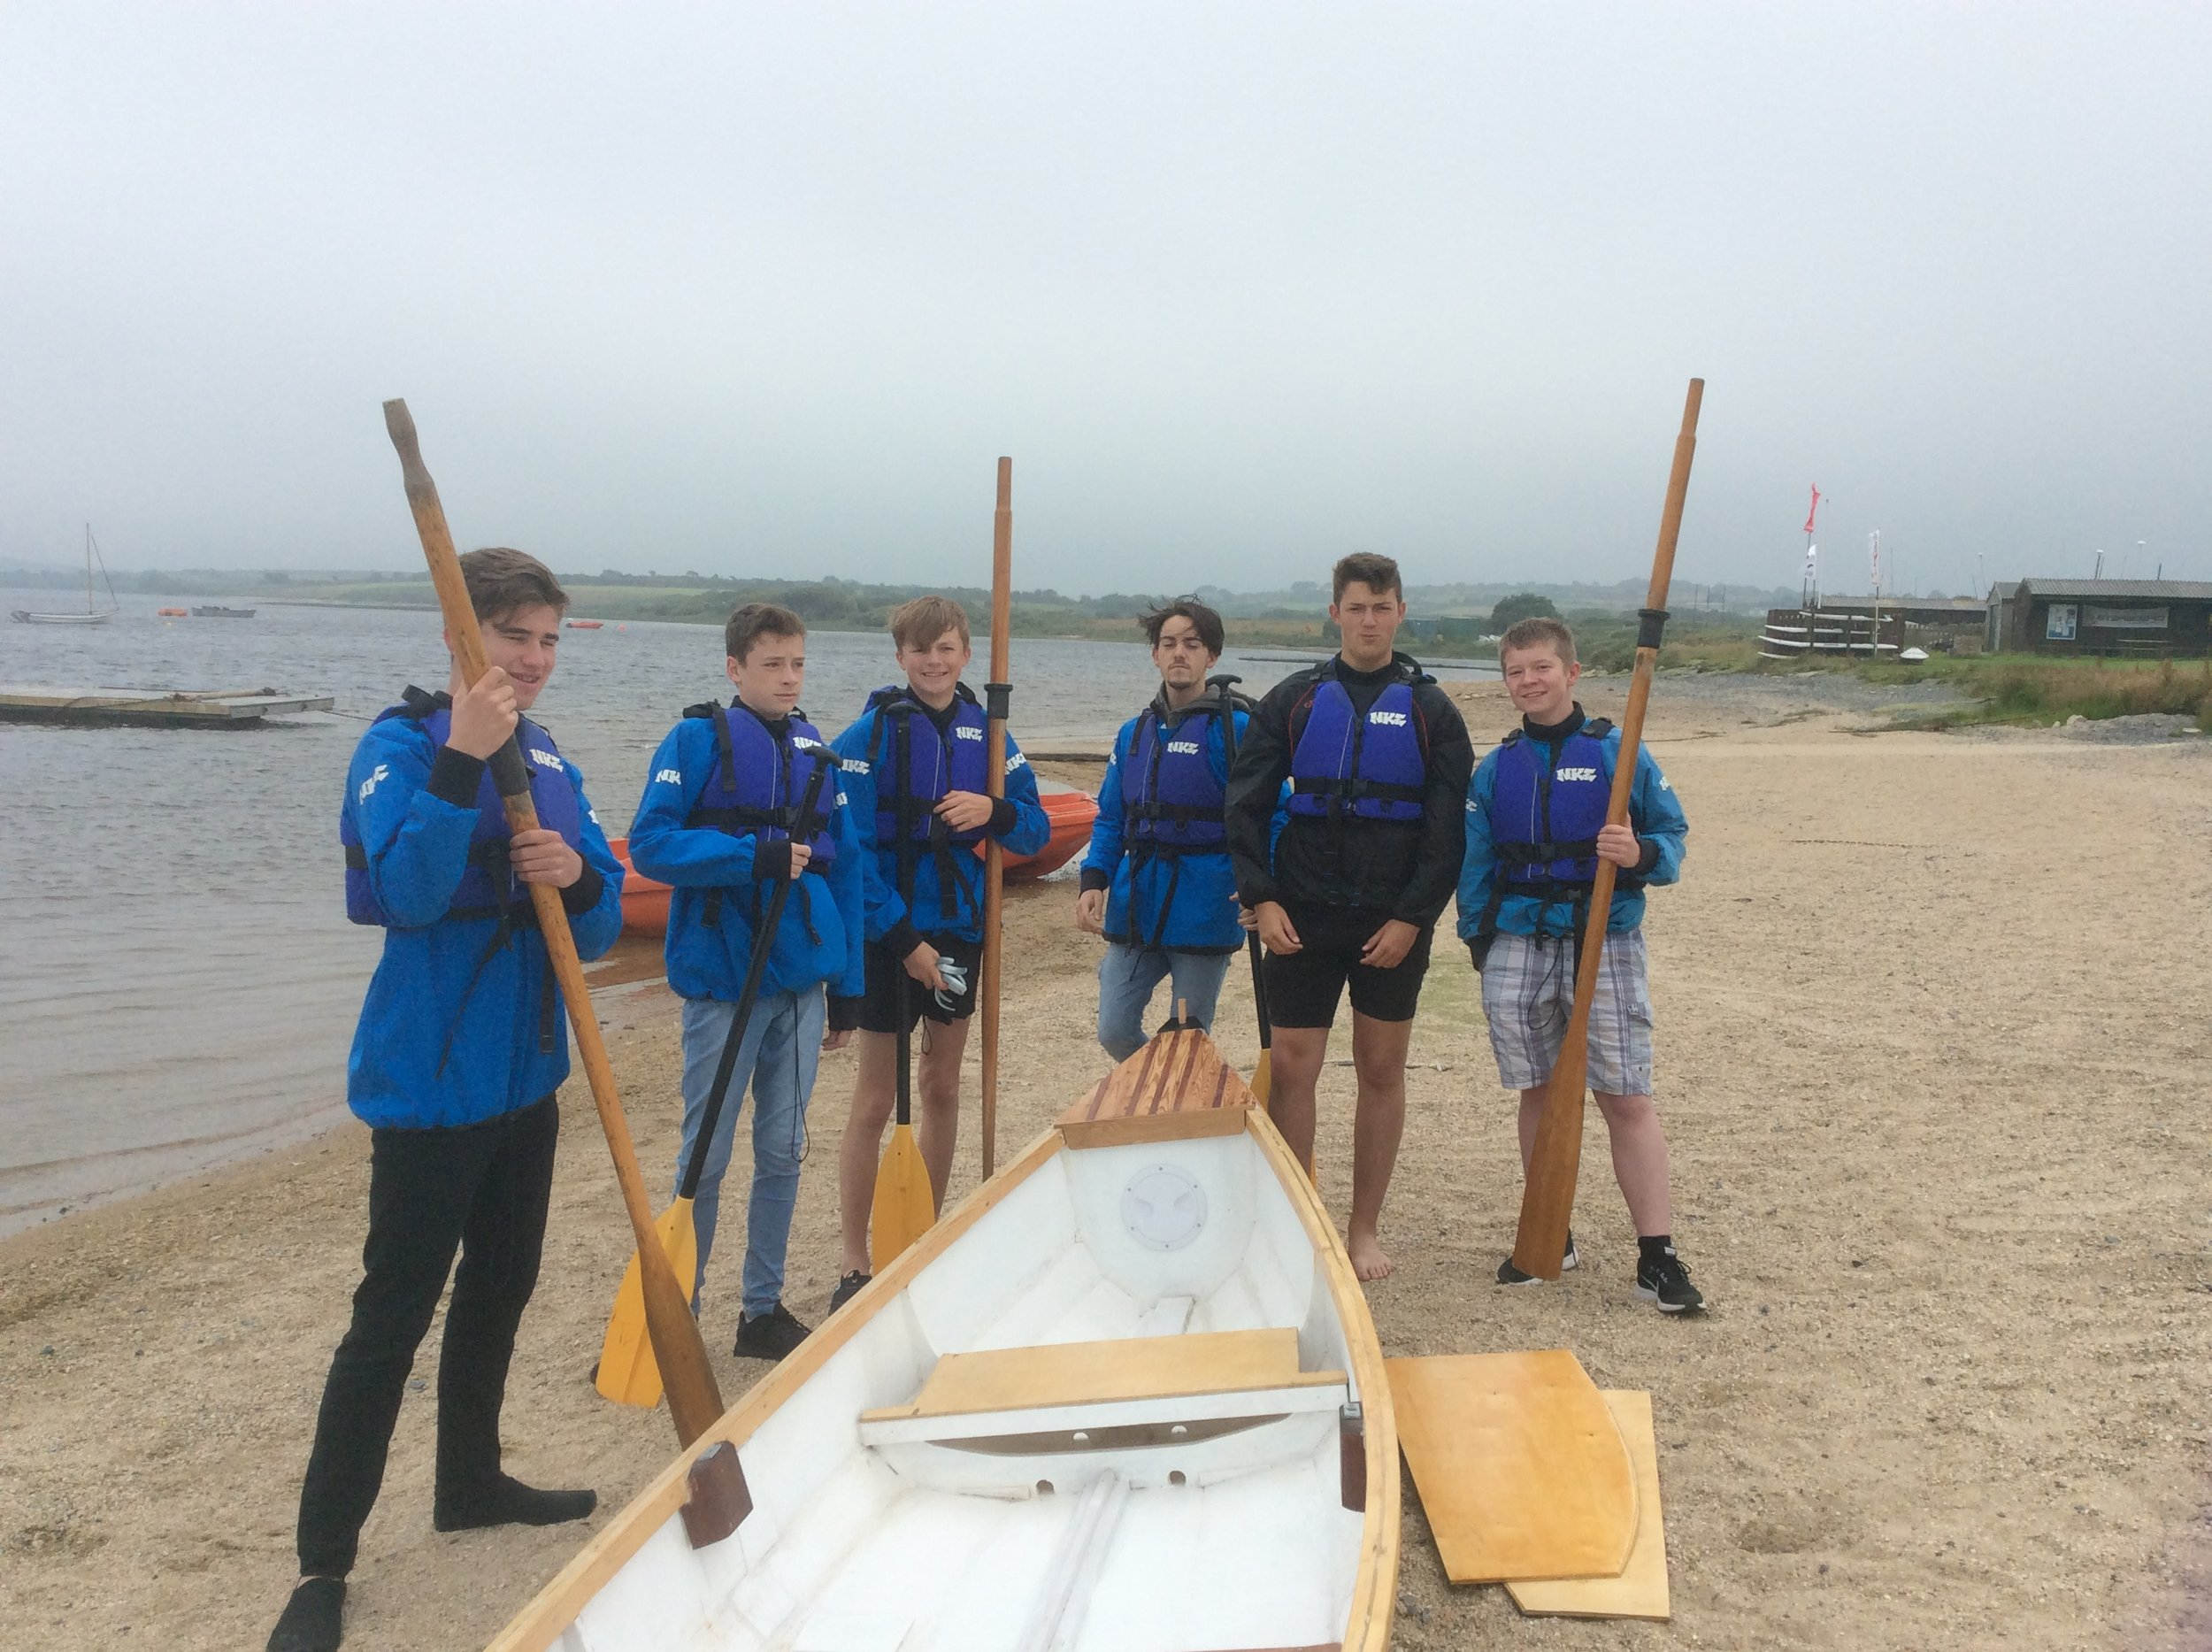 Students ready to row the boat they made at Pool Academy.  Charlie, Dan, Evan Connor,  Connor and Rhys.